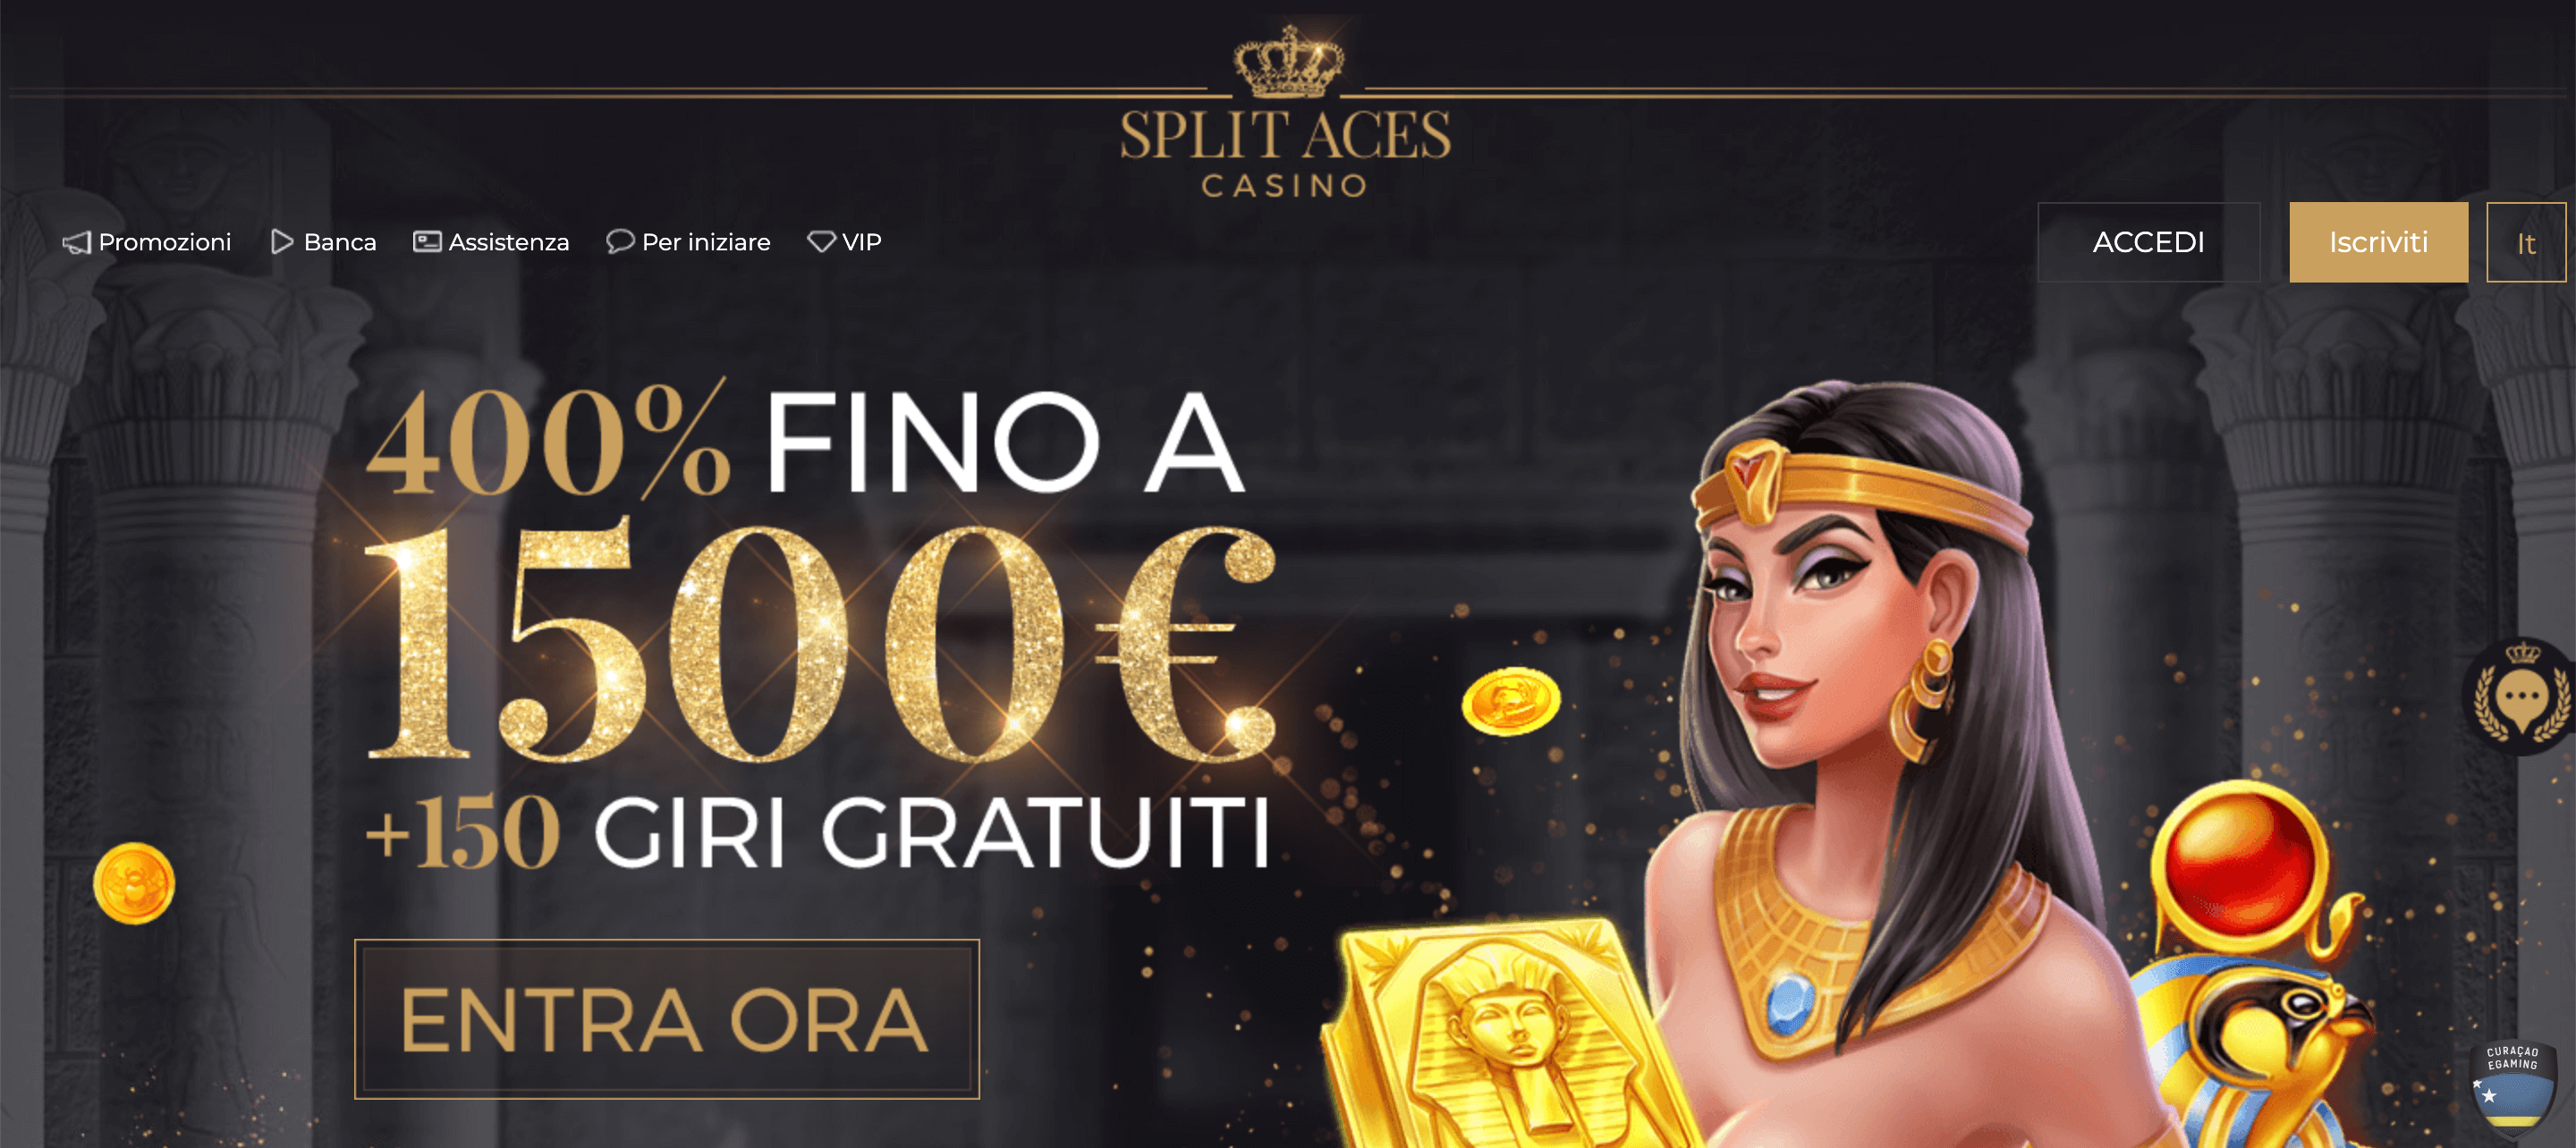 Split Aces Casinò Screenshot